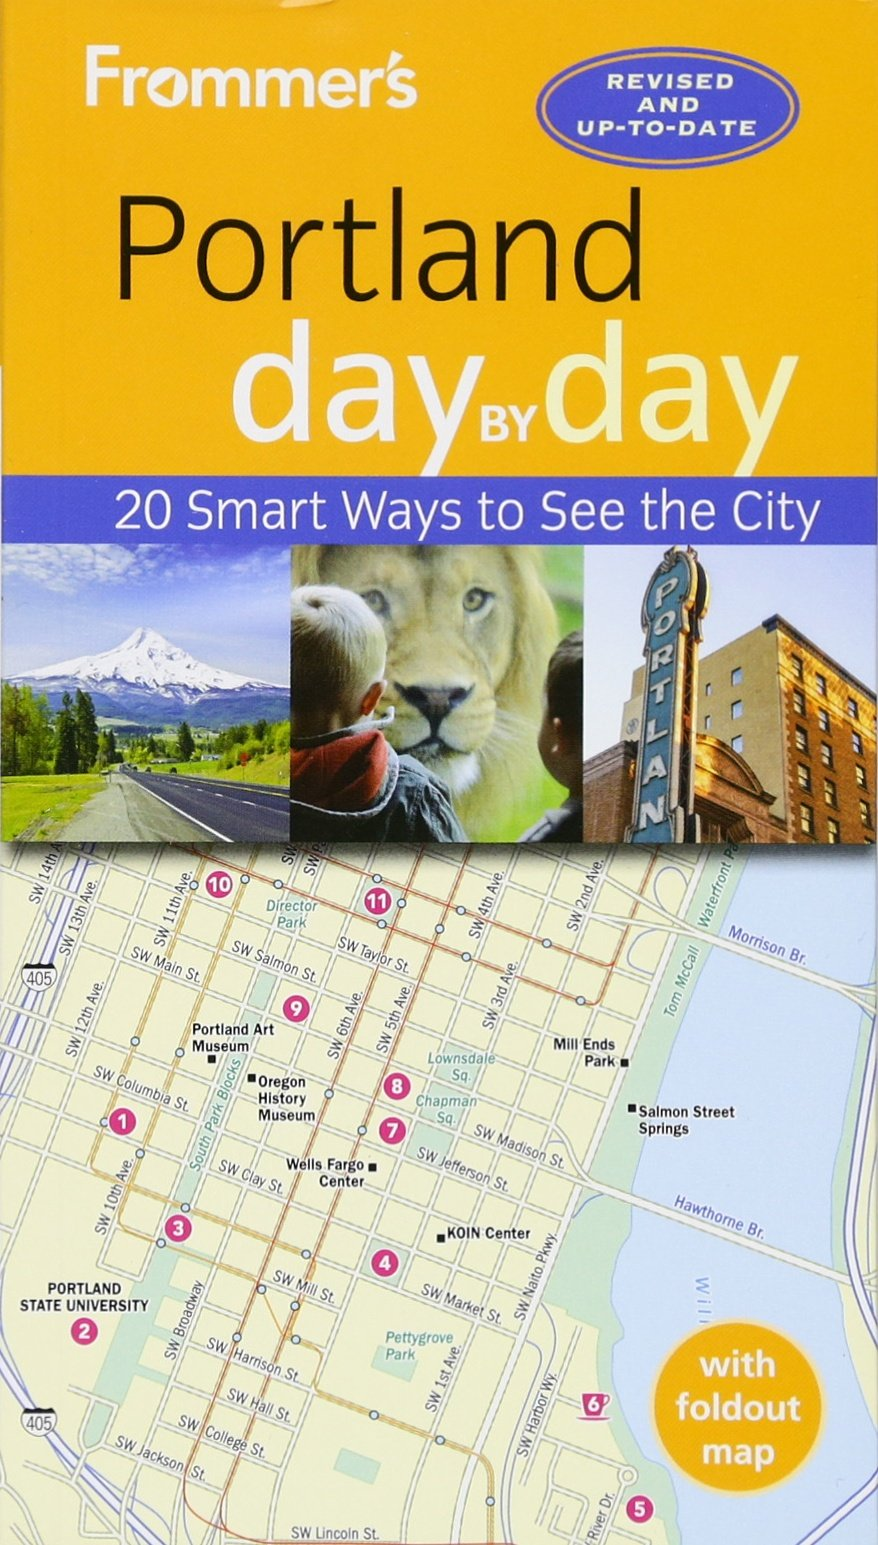 Frommer's Portland day by day